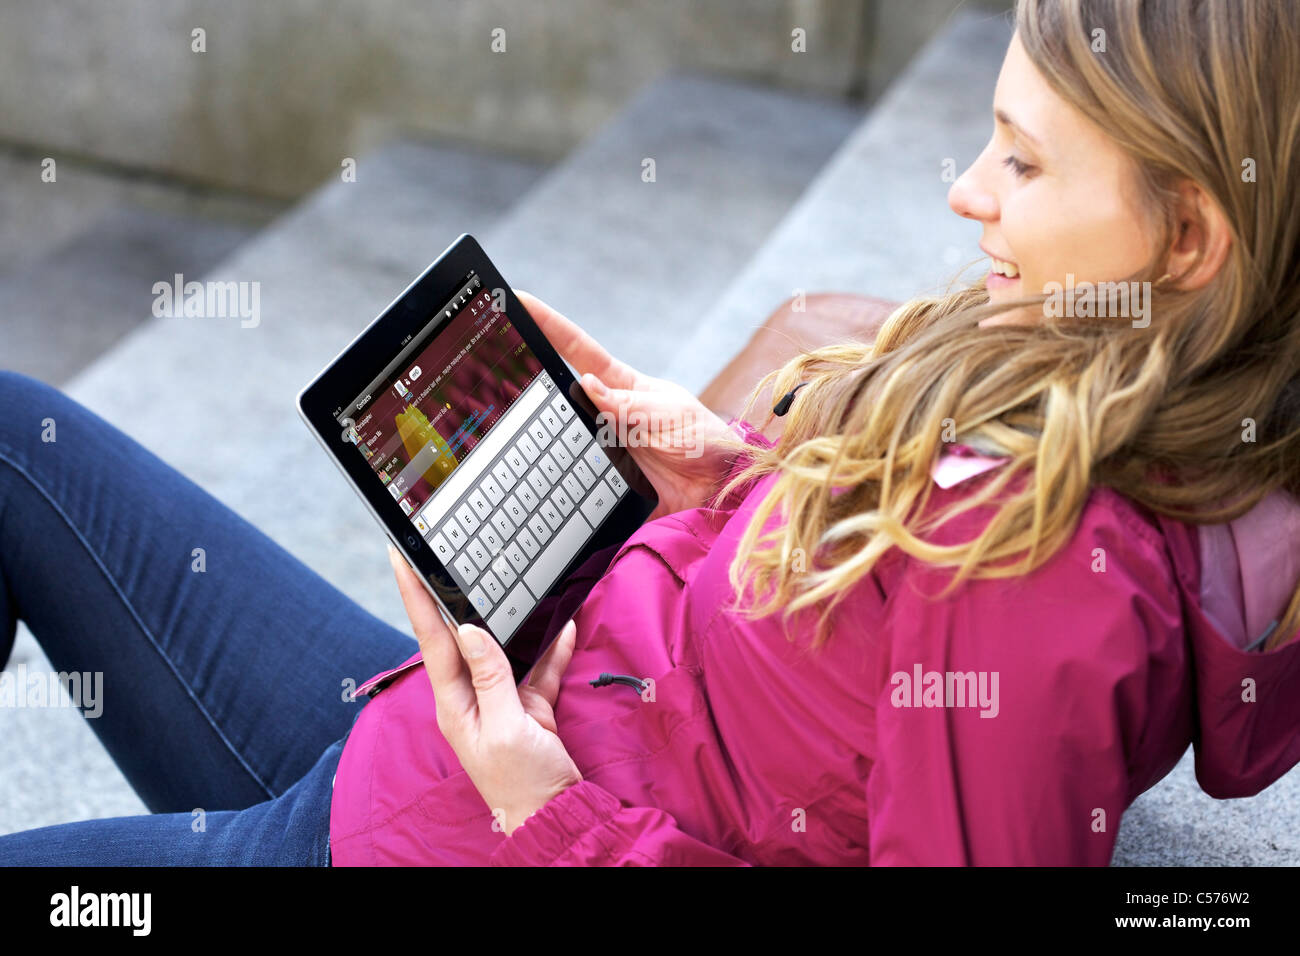 View of a Caucasian young woman chatting with IM app (Instant Messaging) app on an iPad 2 through wireless internet - Stock Image